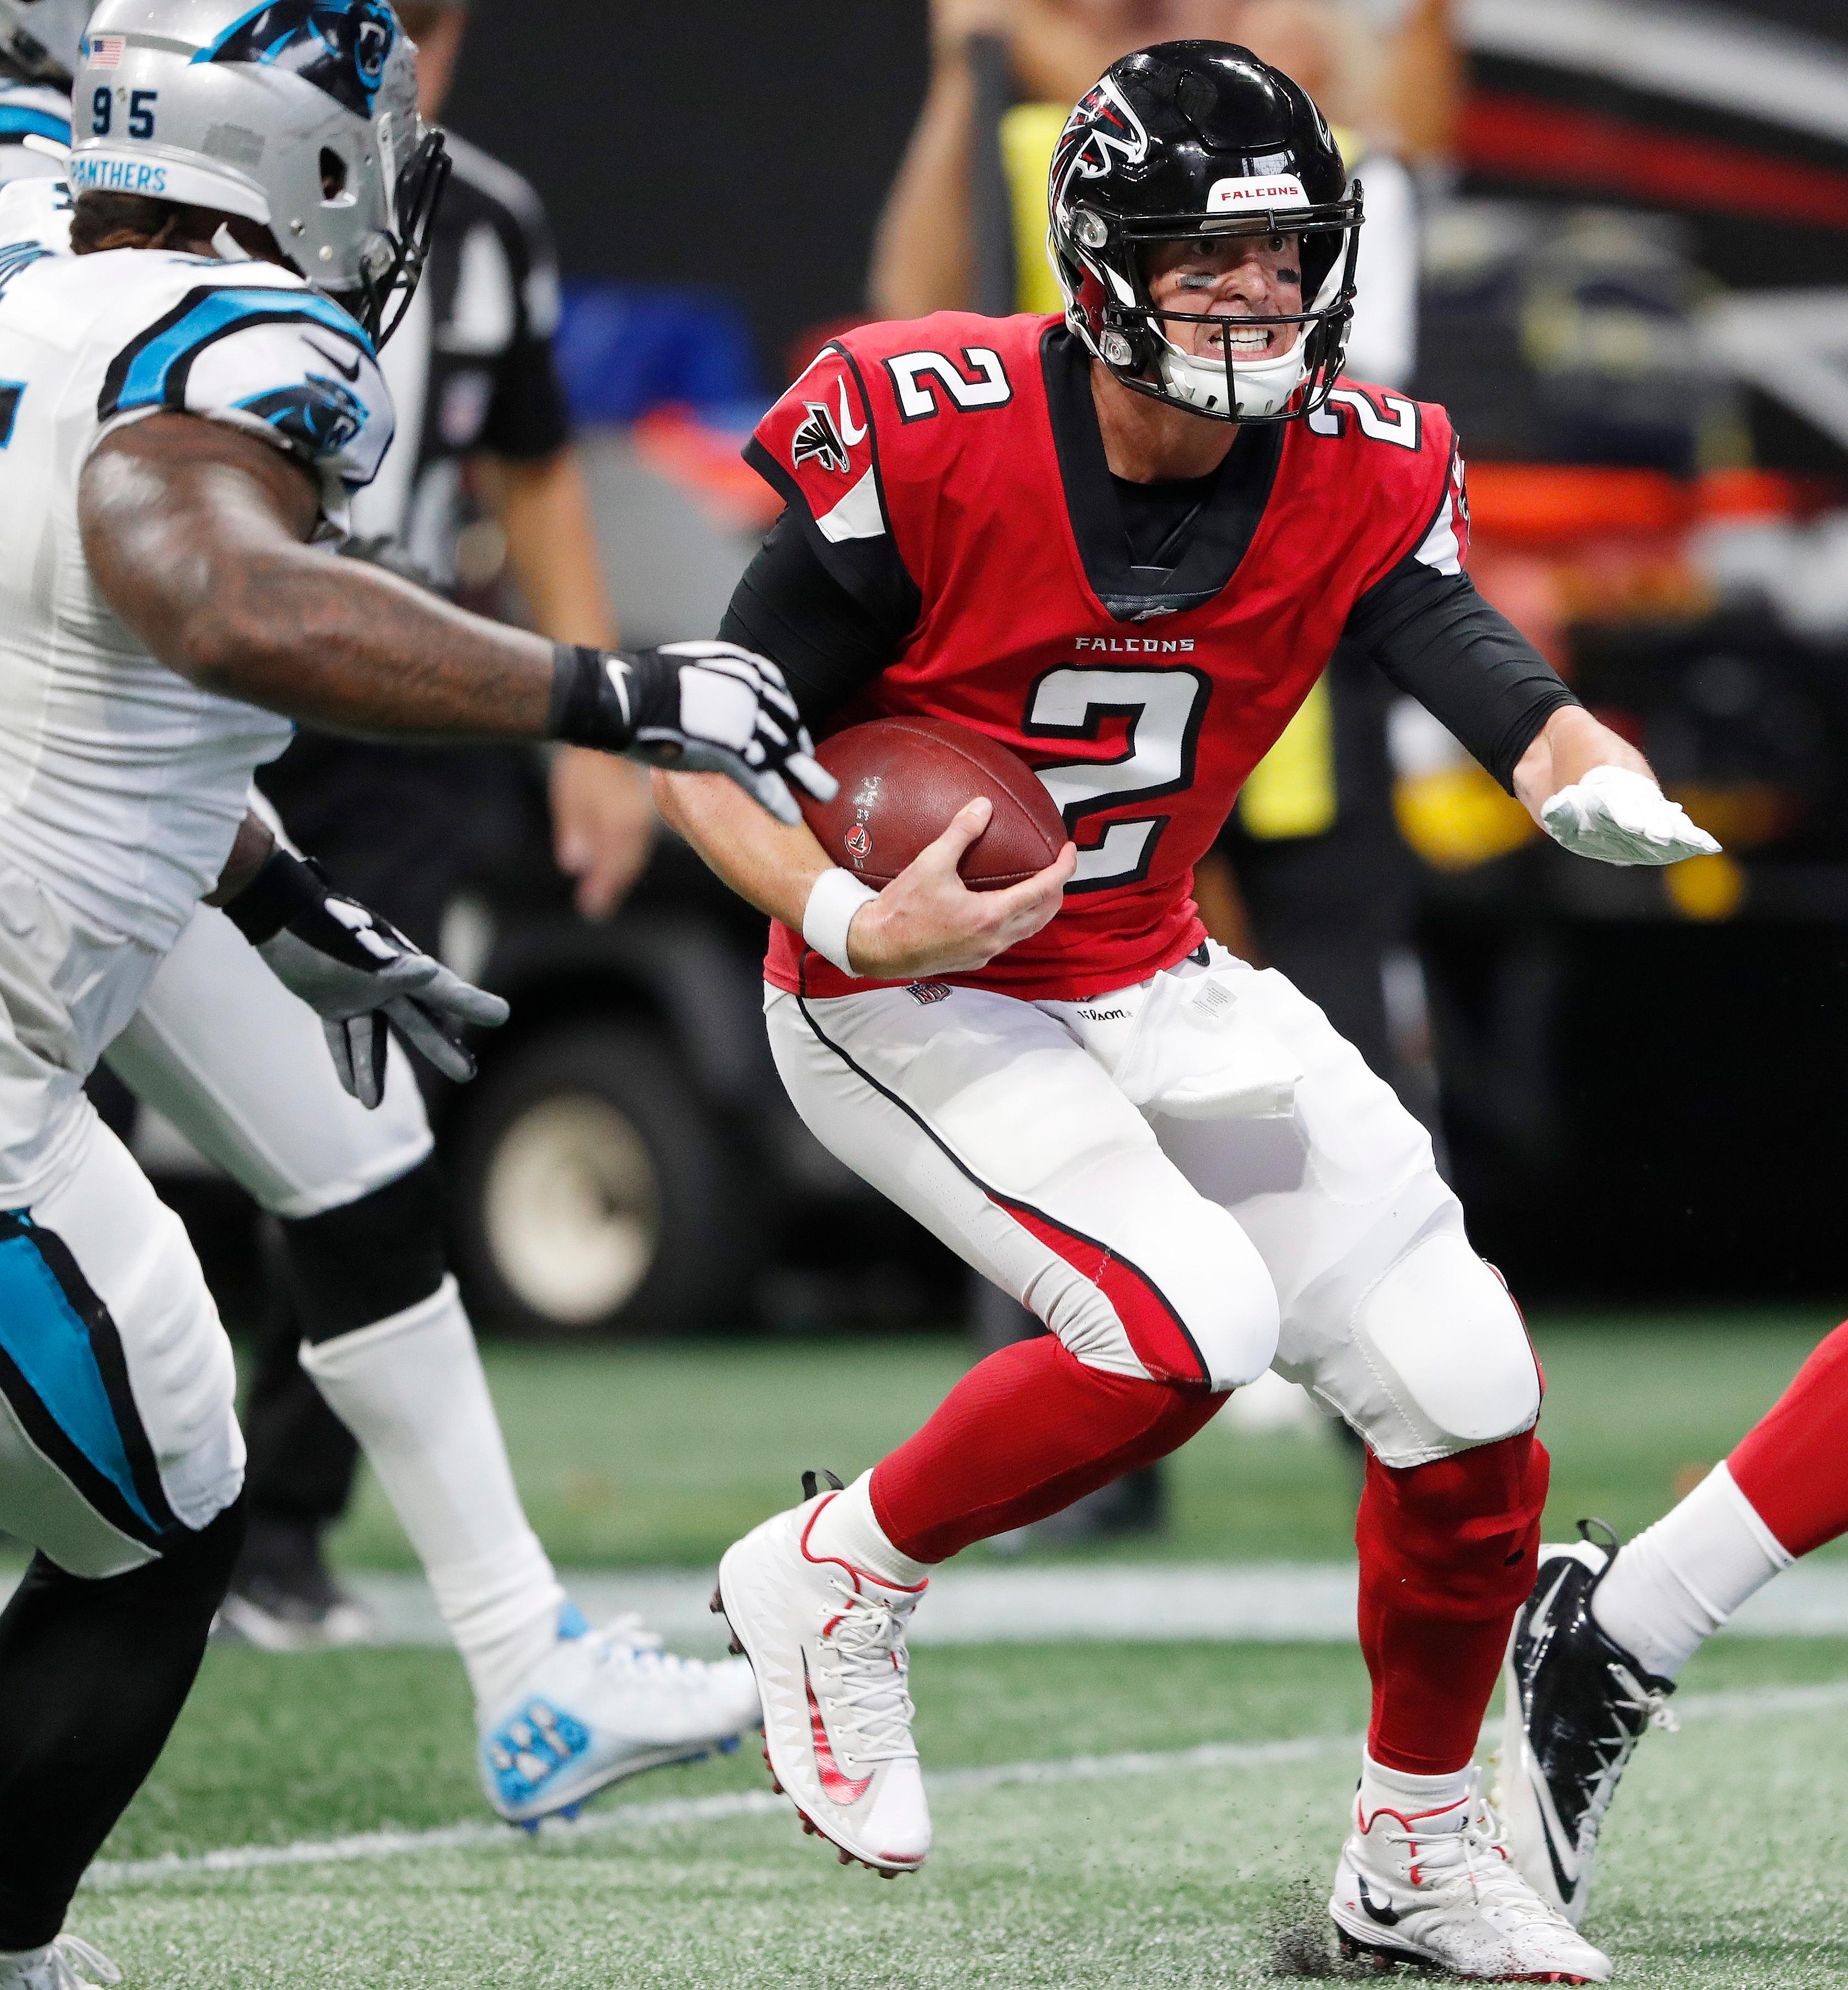 Atlanta Falcons quarterback Matt Ryan (2) runs through Carolina Panthers players during the second half of an NFL football game, Sunday, Sept. 16, 2018, in Atlanta. Ryan scored a touchdown on the play. (AP Photo/John Bazemore)